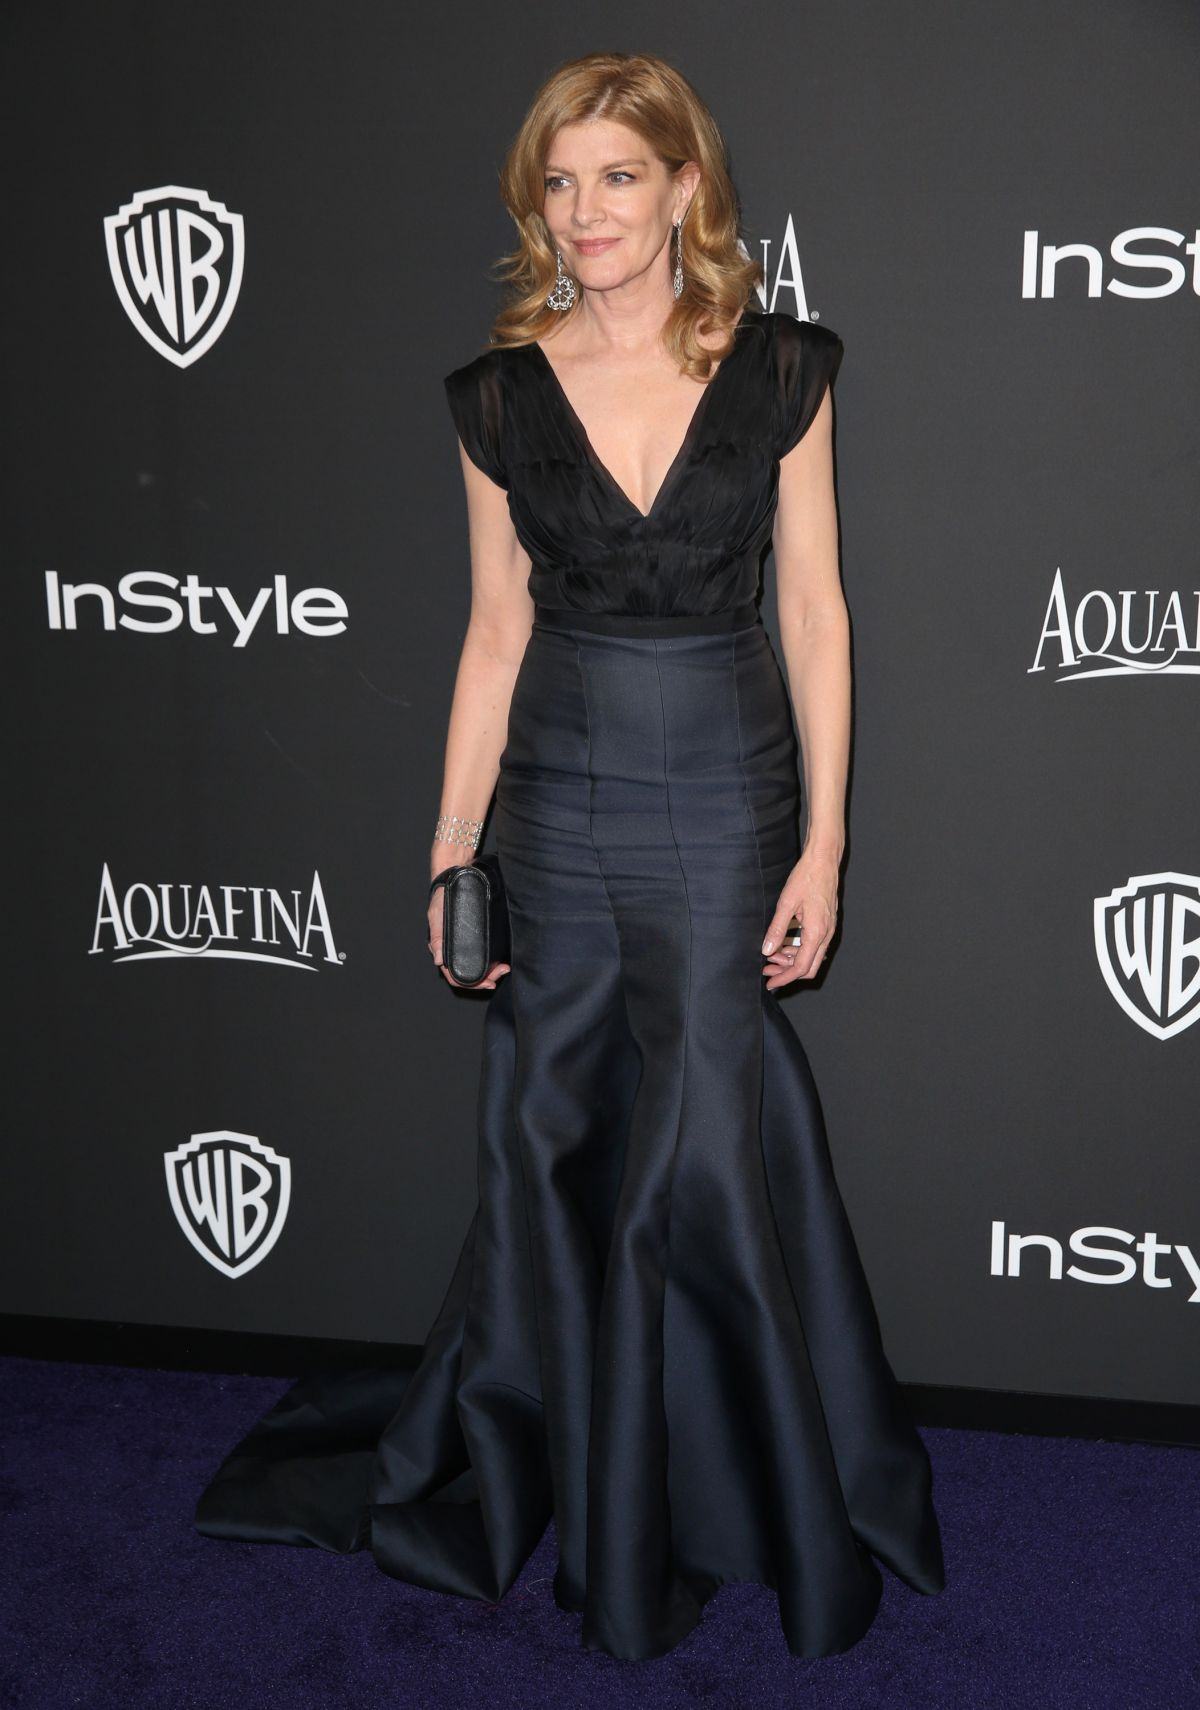 RENE RUSSO at Instyle and Warner Bros Golden Globes Party in Beverly Hills